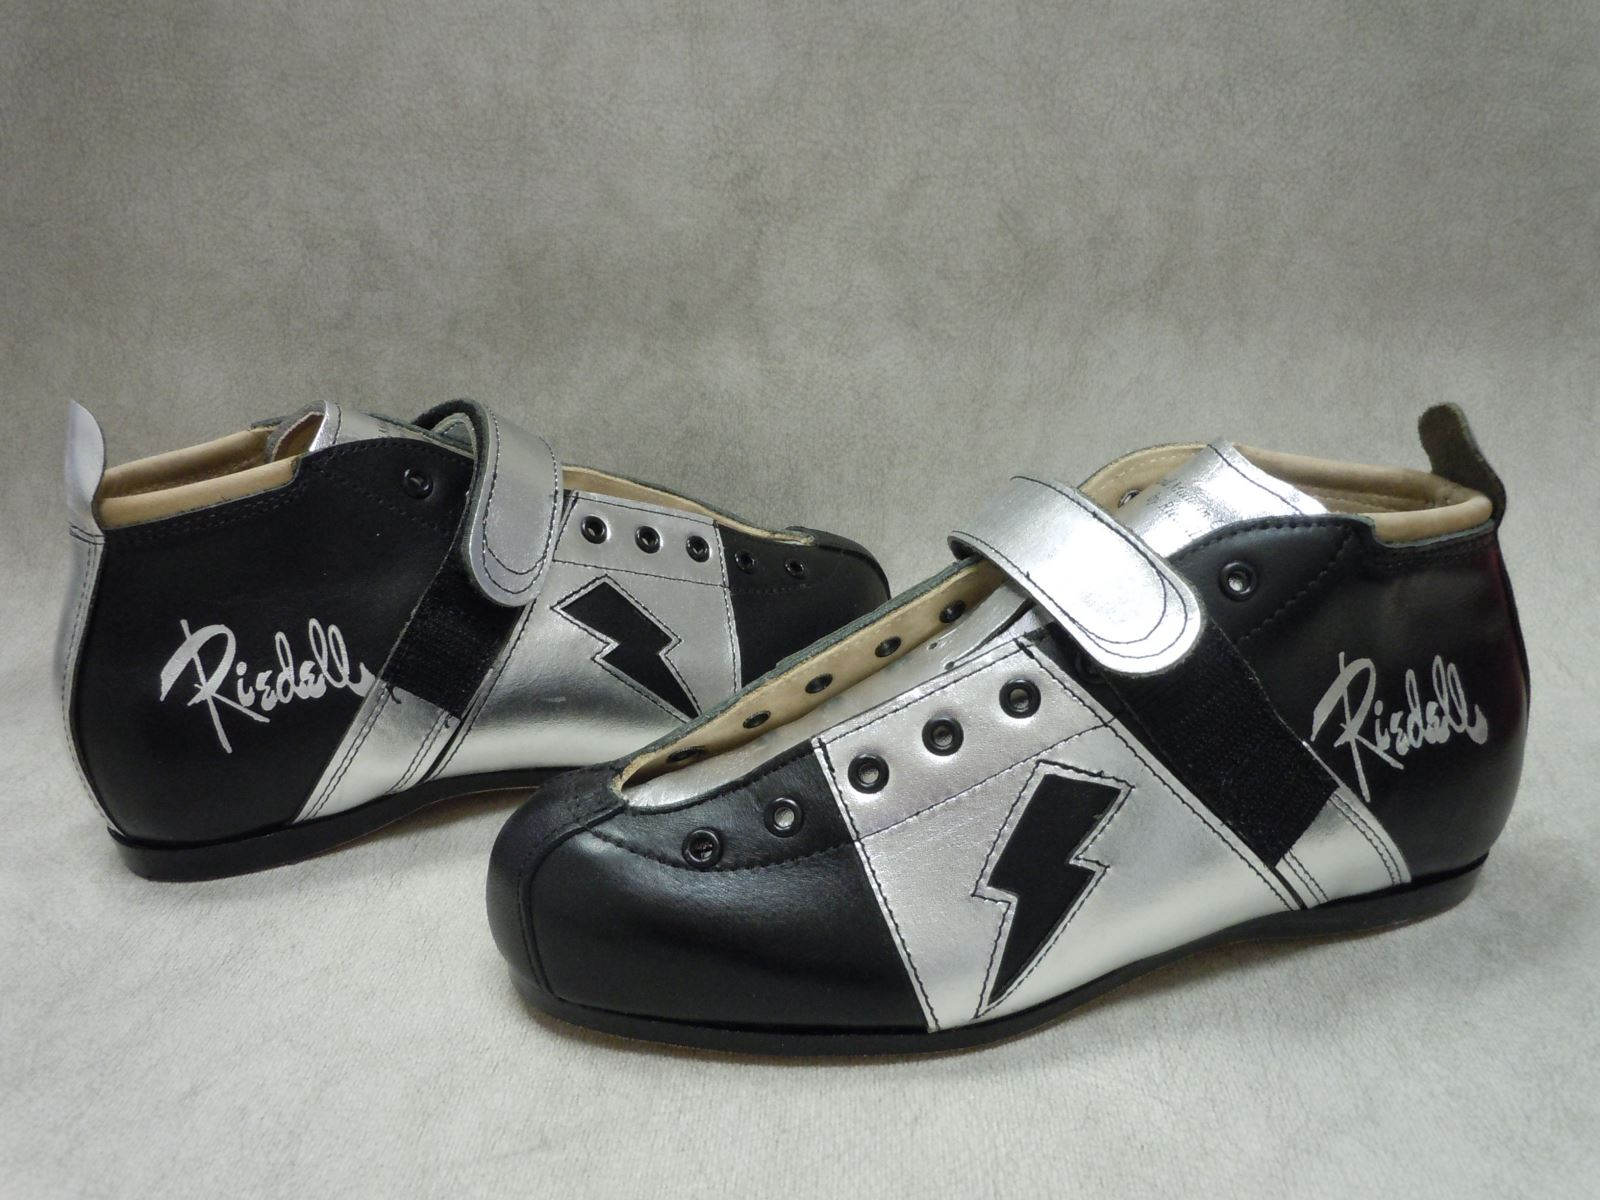 Riedell ColorLab Full Custom Boot - Model 1065 with Black and Metallic Silver Leather and custom lightning bolt graphic